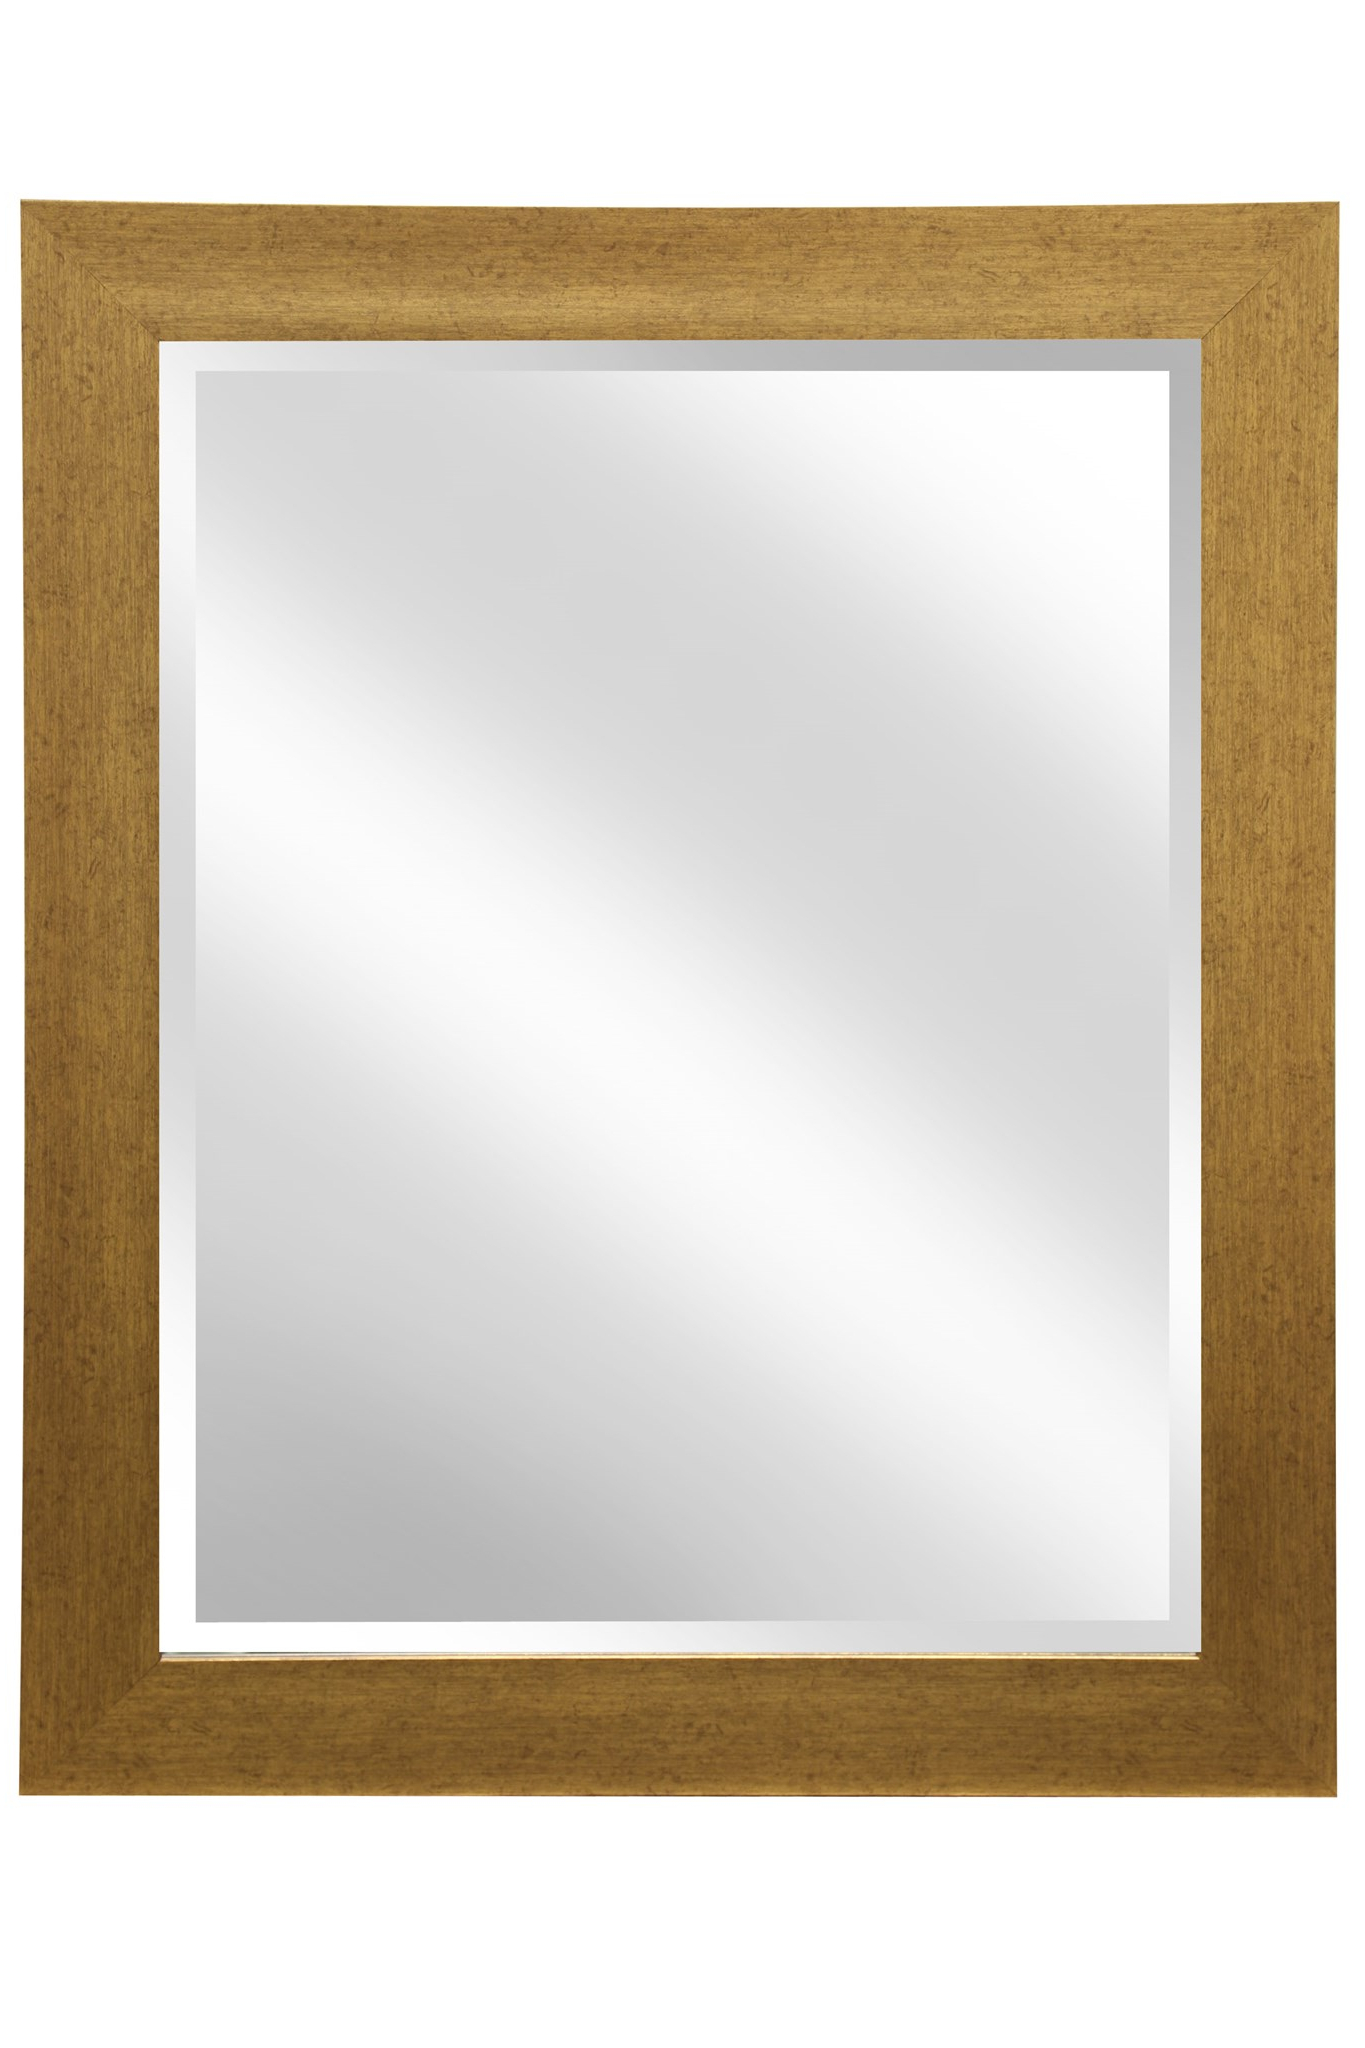 Honey Oak Framed Wall Mirror Regarding Current Oak Wall Mirrors (View 4 of 20)